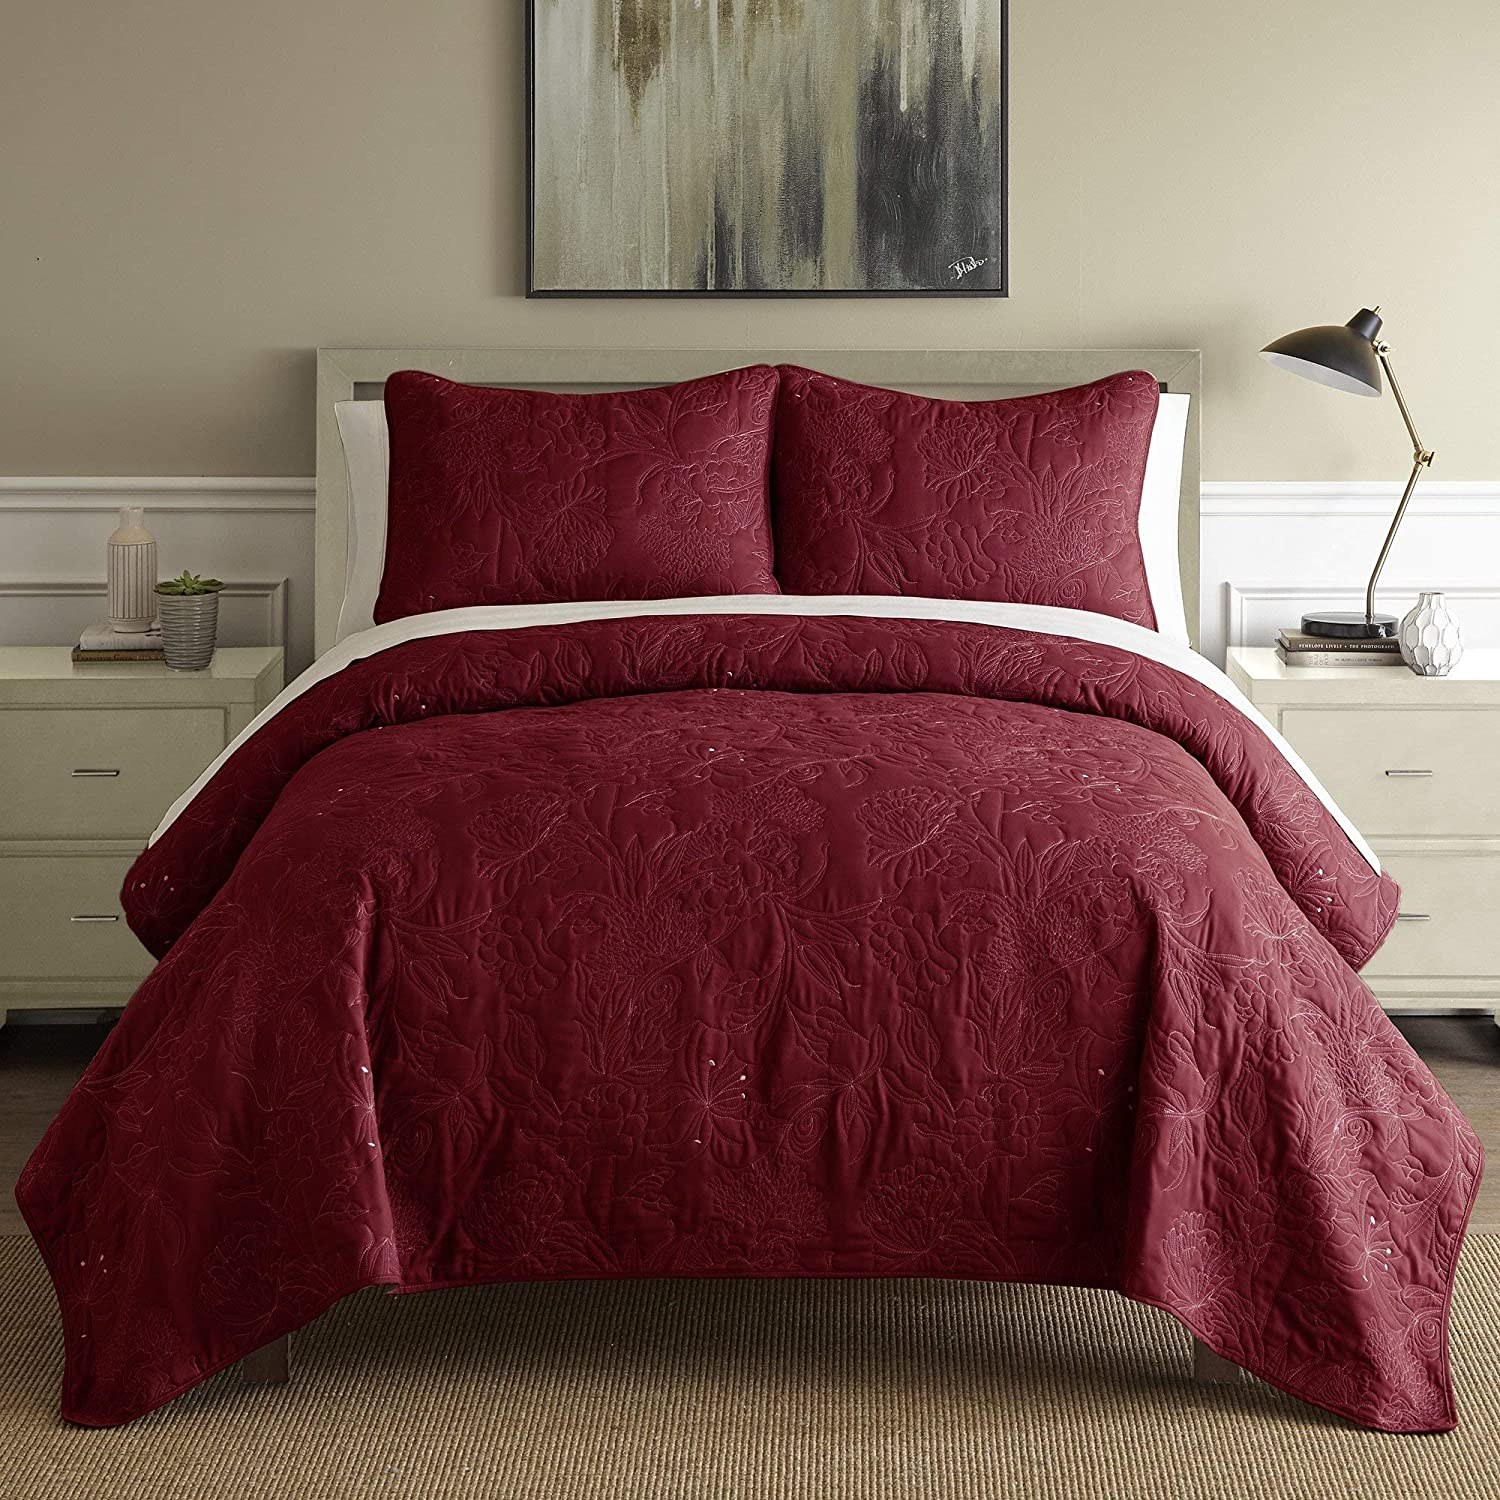 Amrapur Overseas 3-Piece Embroidered Floral Quilt Set with Shams (Dusty Plum, Queen) 3QLCEMBG-PLW-QN